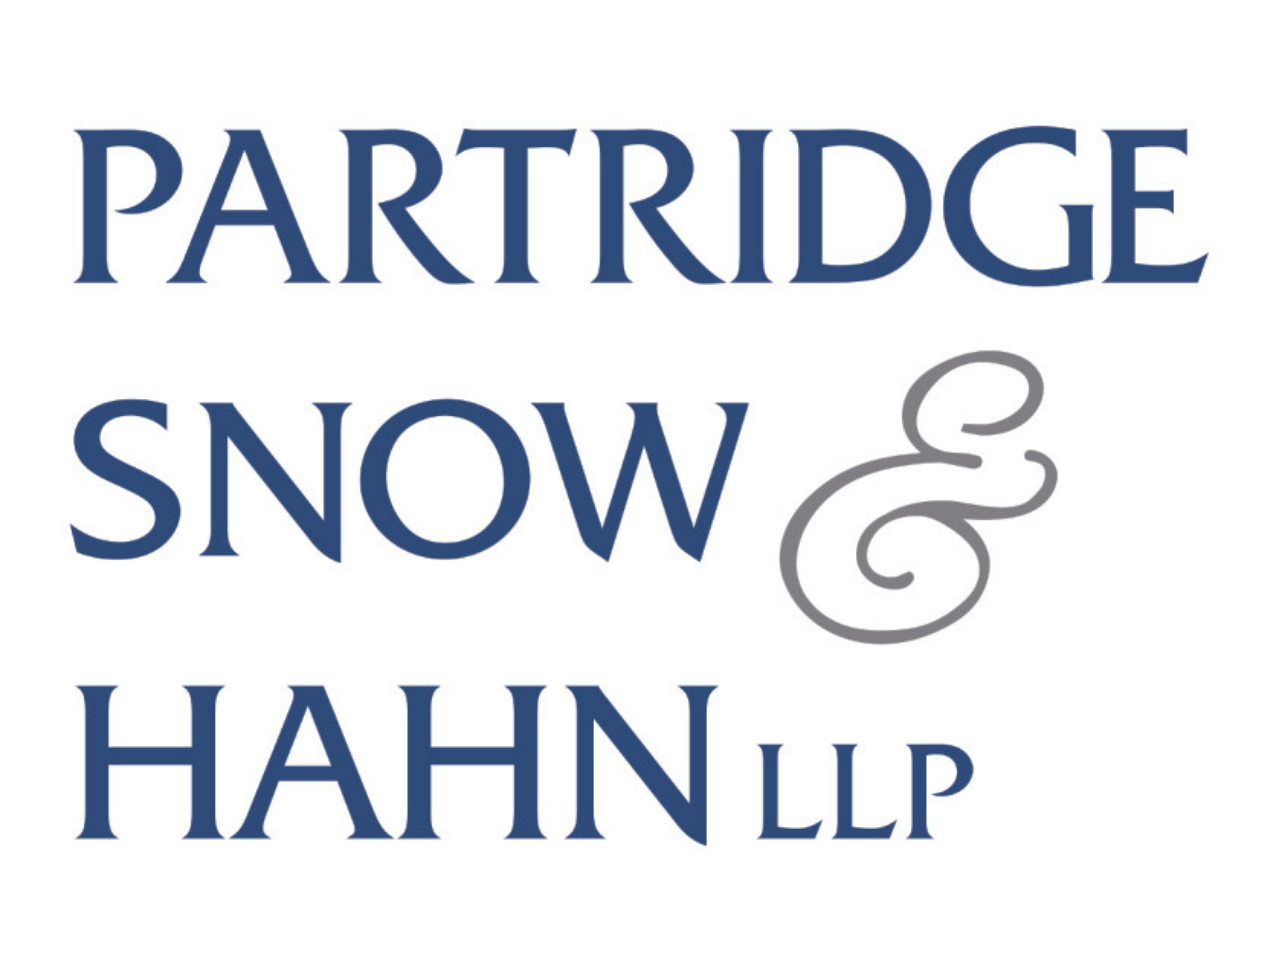 Partridge Snow & Hahn LLP